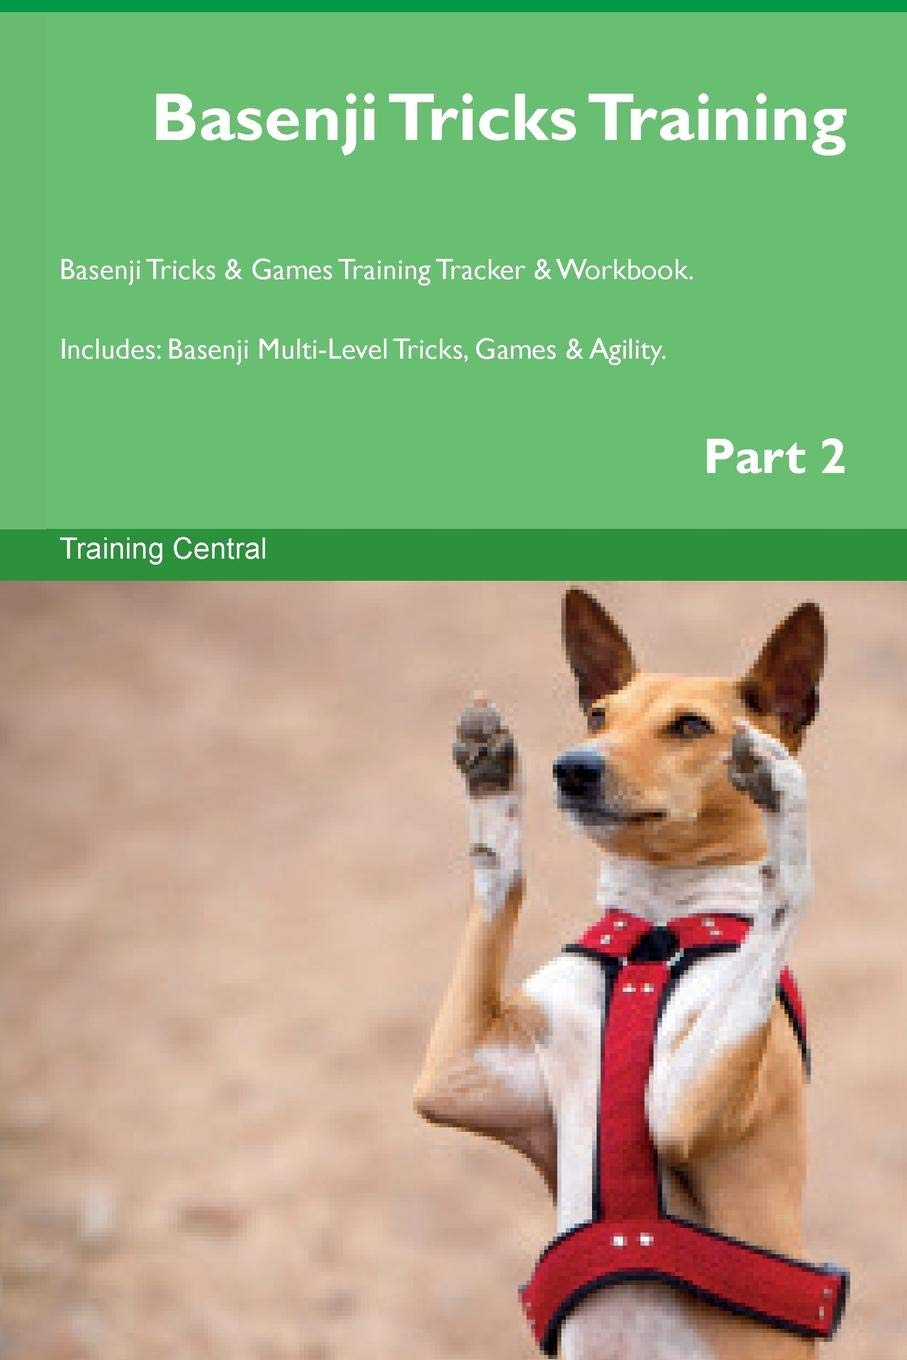 Basenji Tricks Training Basenji Tricks & Games Training Tracker & Workbook.  Includes: Basenji Multi-Level Tricks, Games & Agility. Part 2